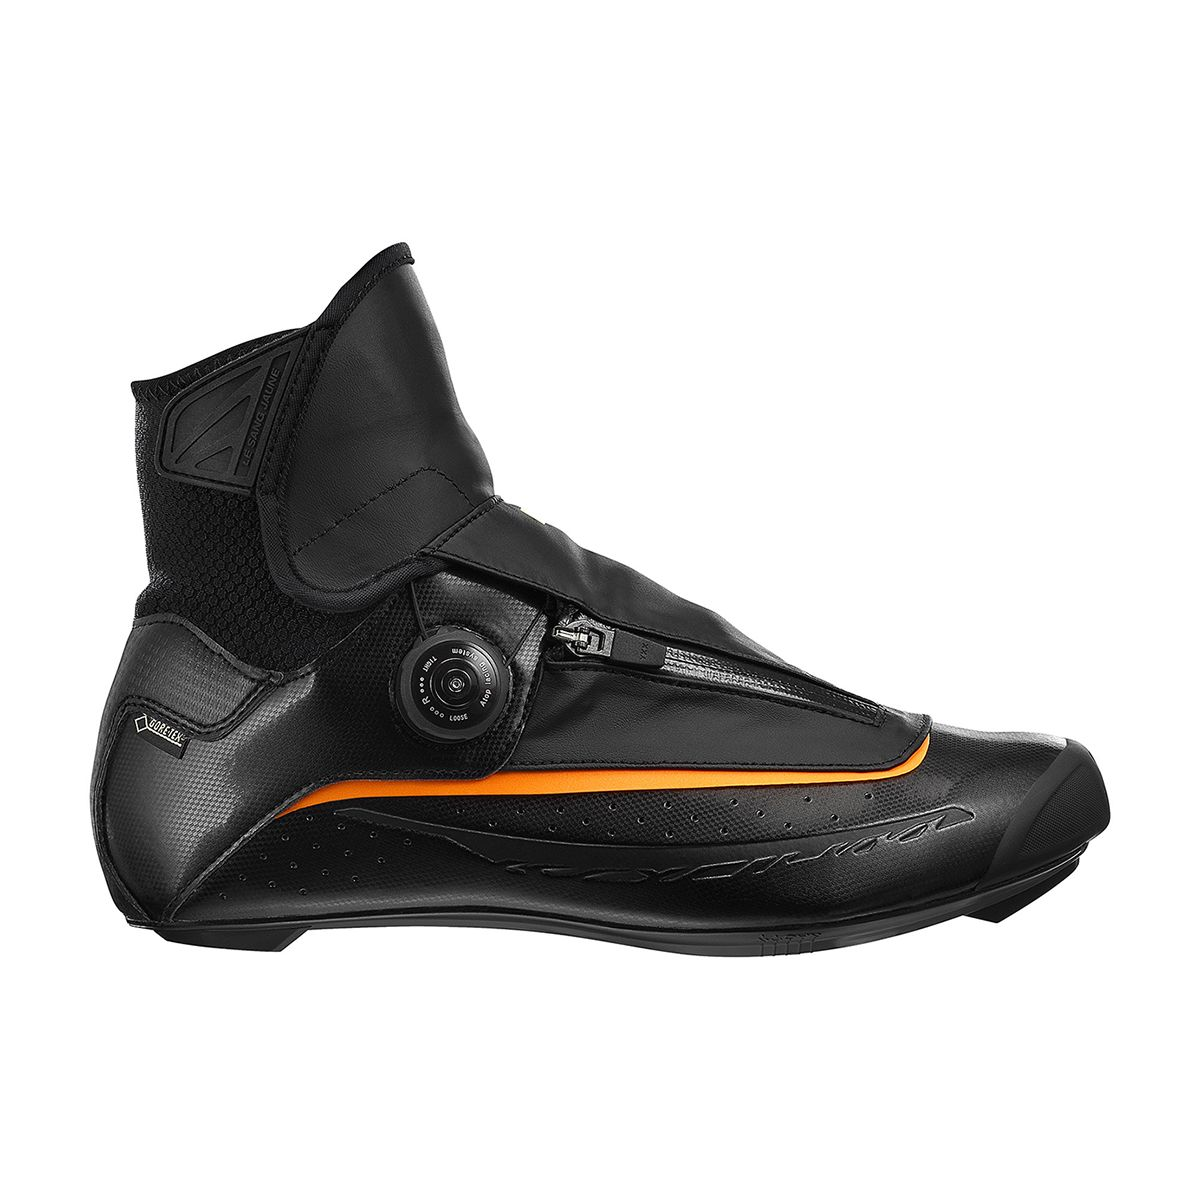 KSYRIUM PRO THERMO Winter Rennradschuhe